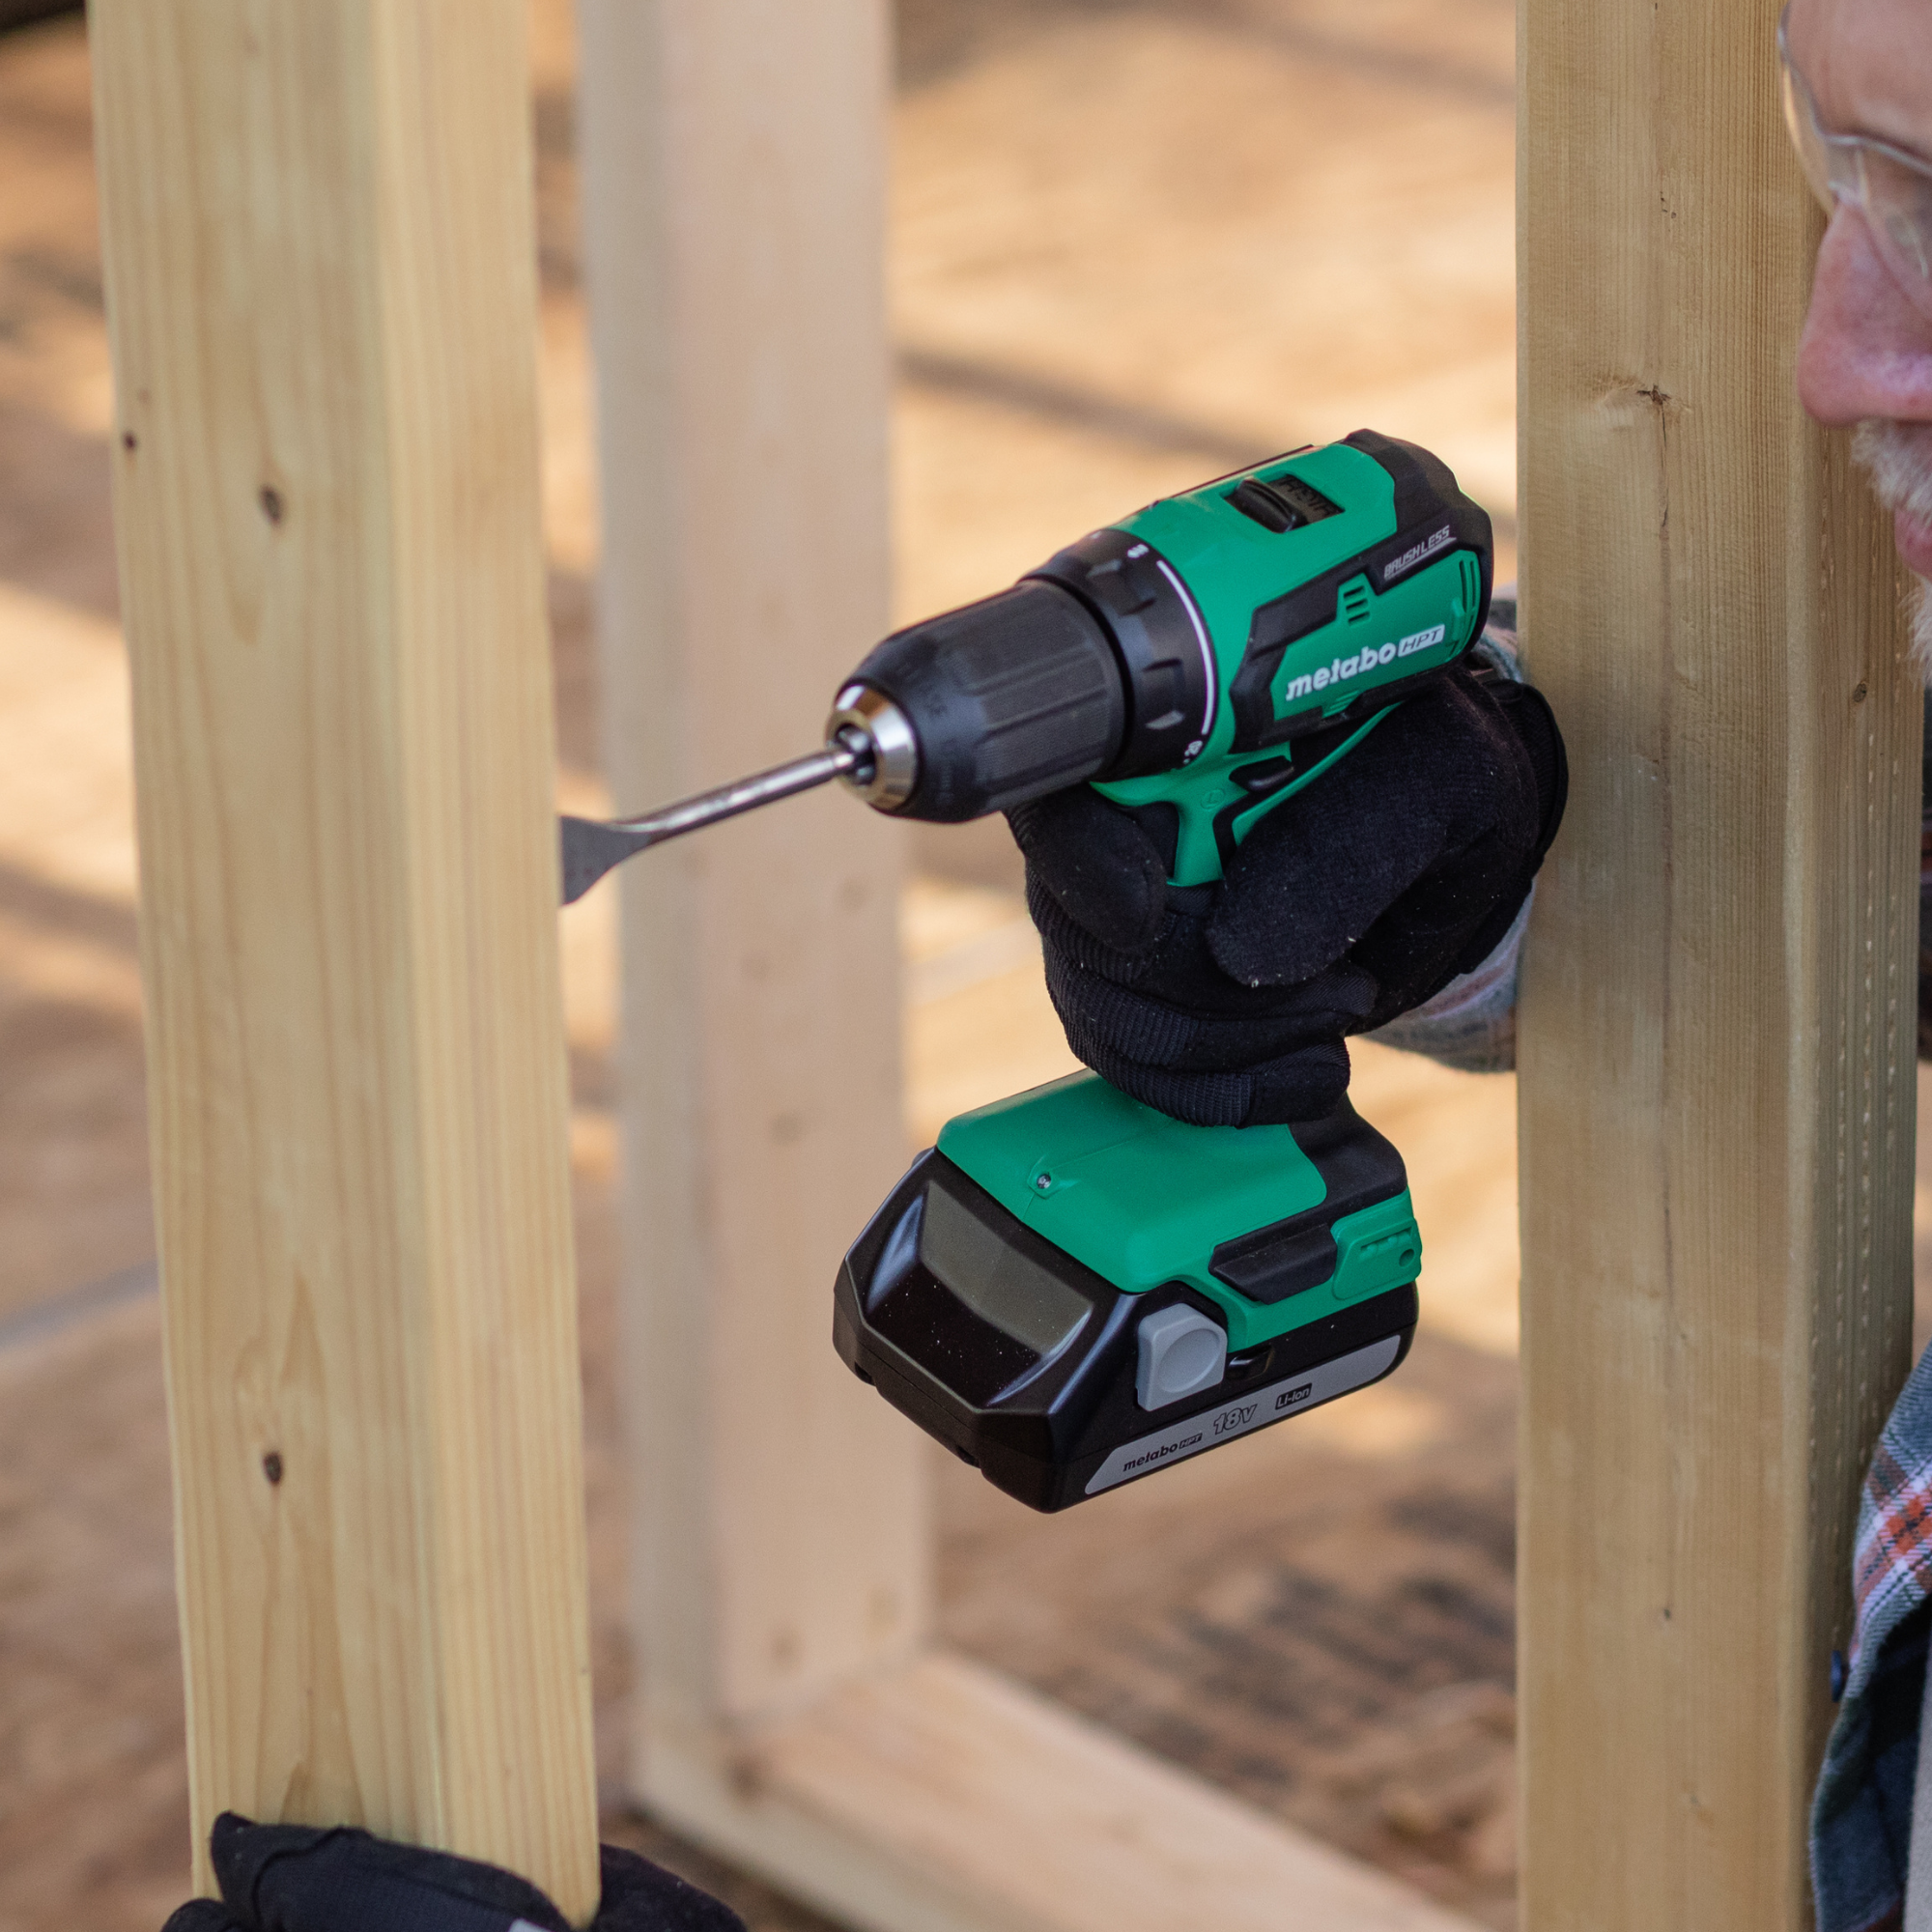 SubCompact Cordless Drill Lifestyle 10